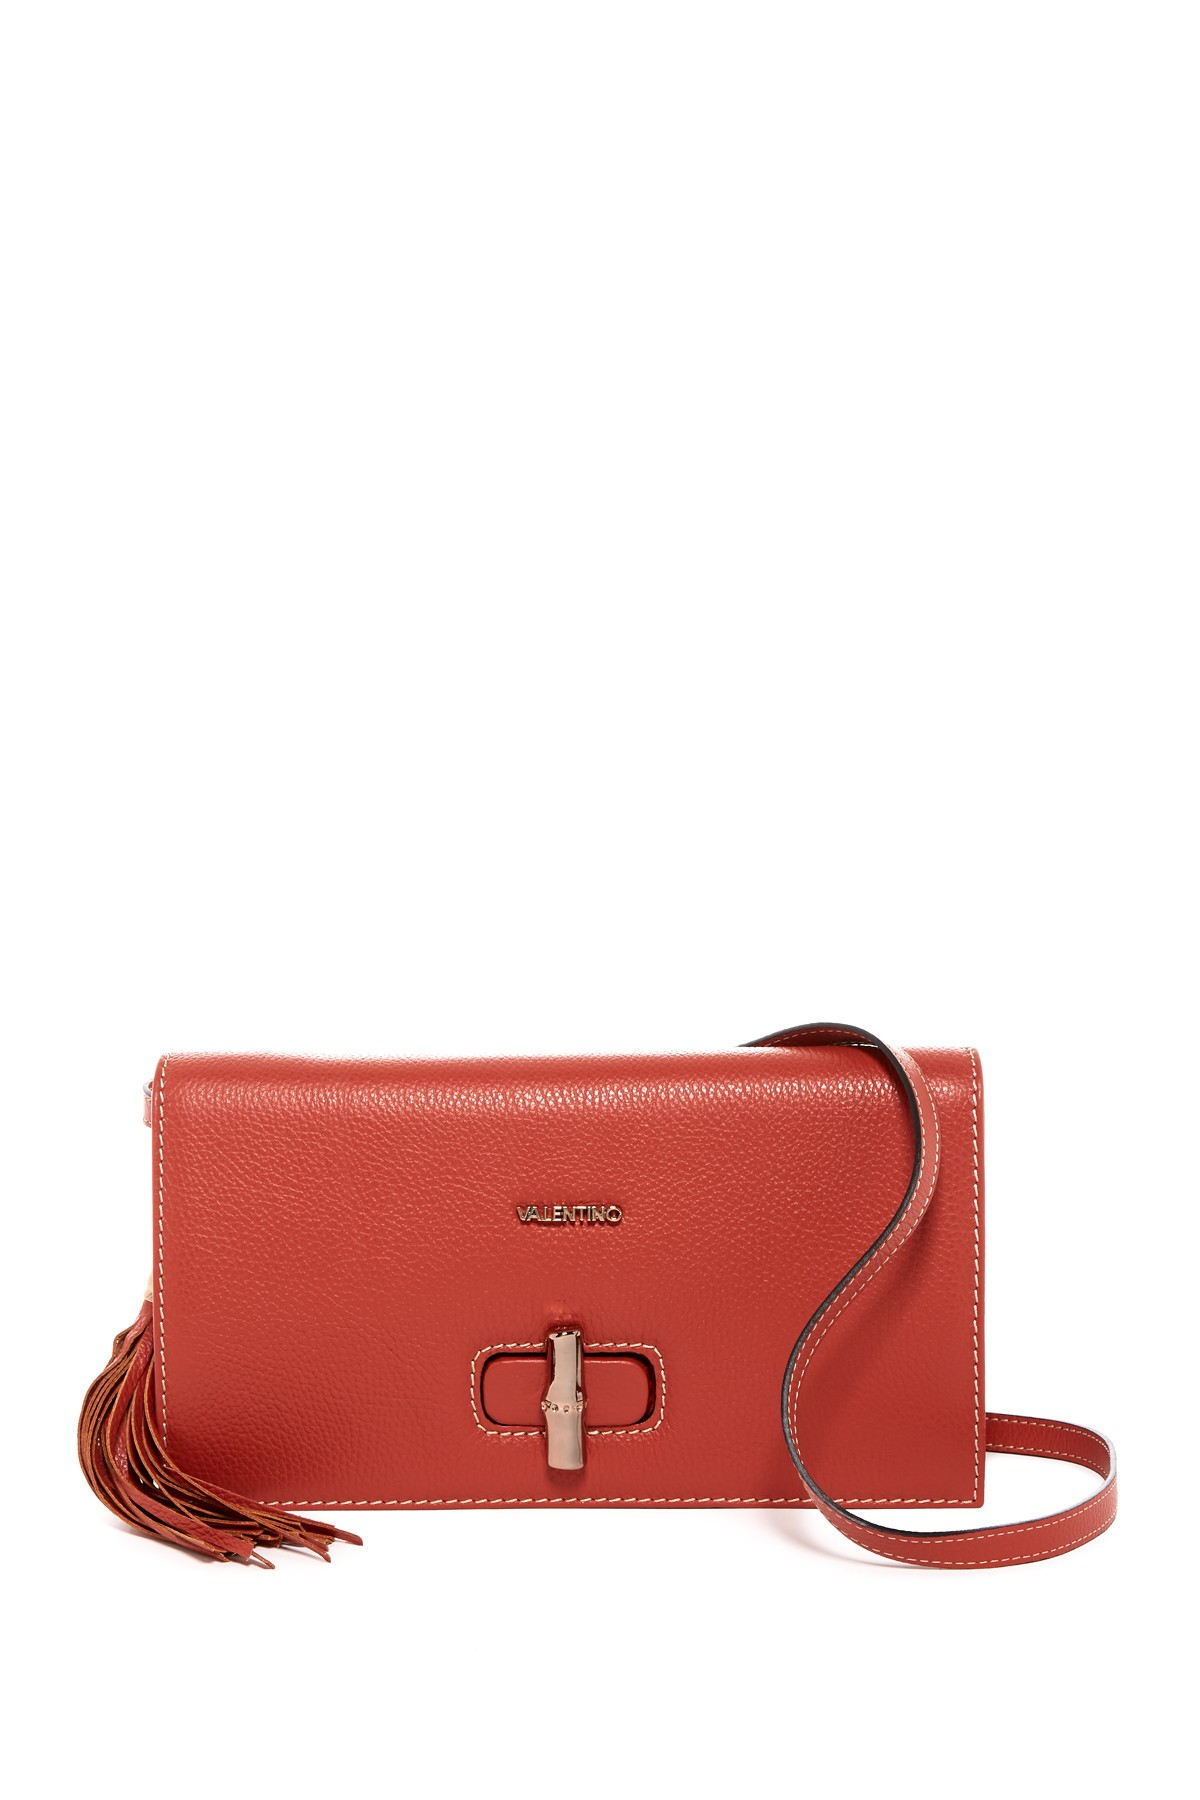 Valentino by mario valentino Elsa Leather Crossbody in Red ...